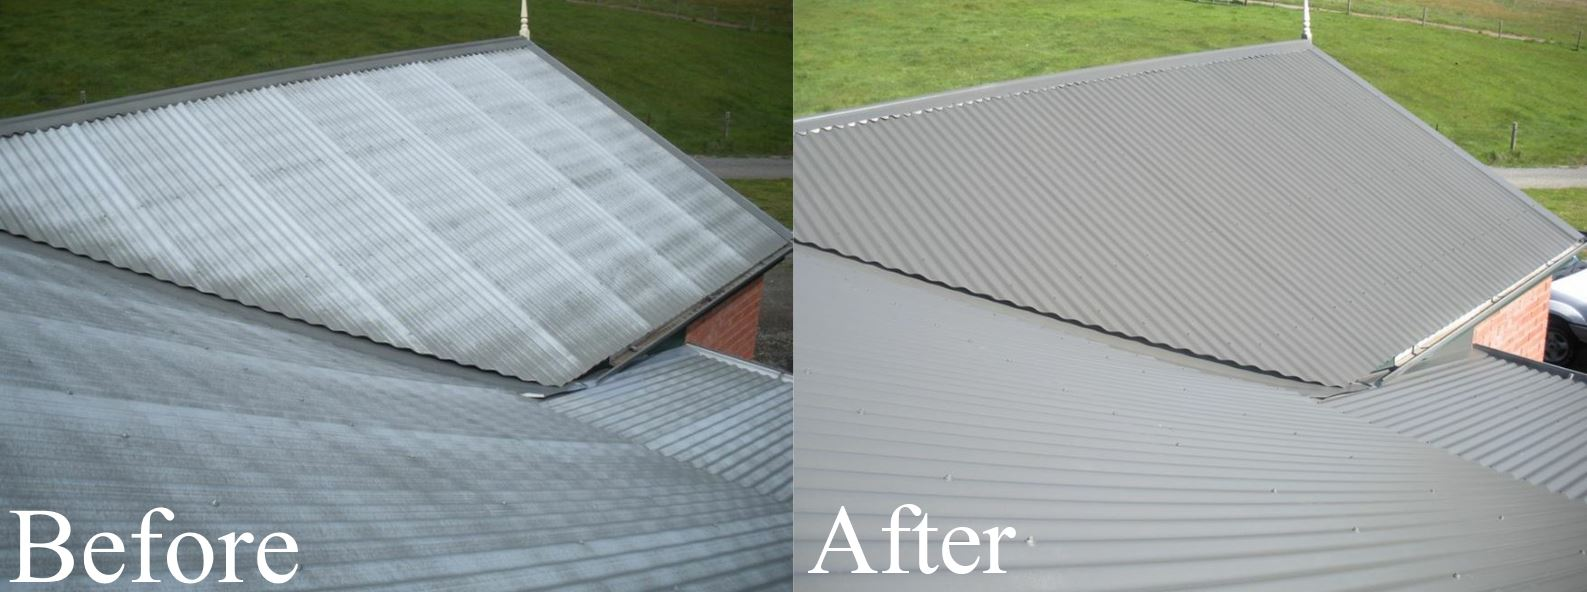 Metal Roof Restoration Hillhouse Roof Rescue